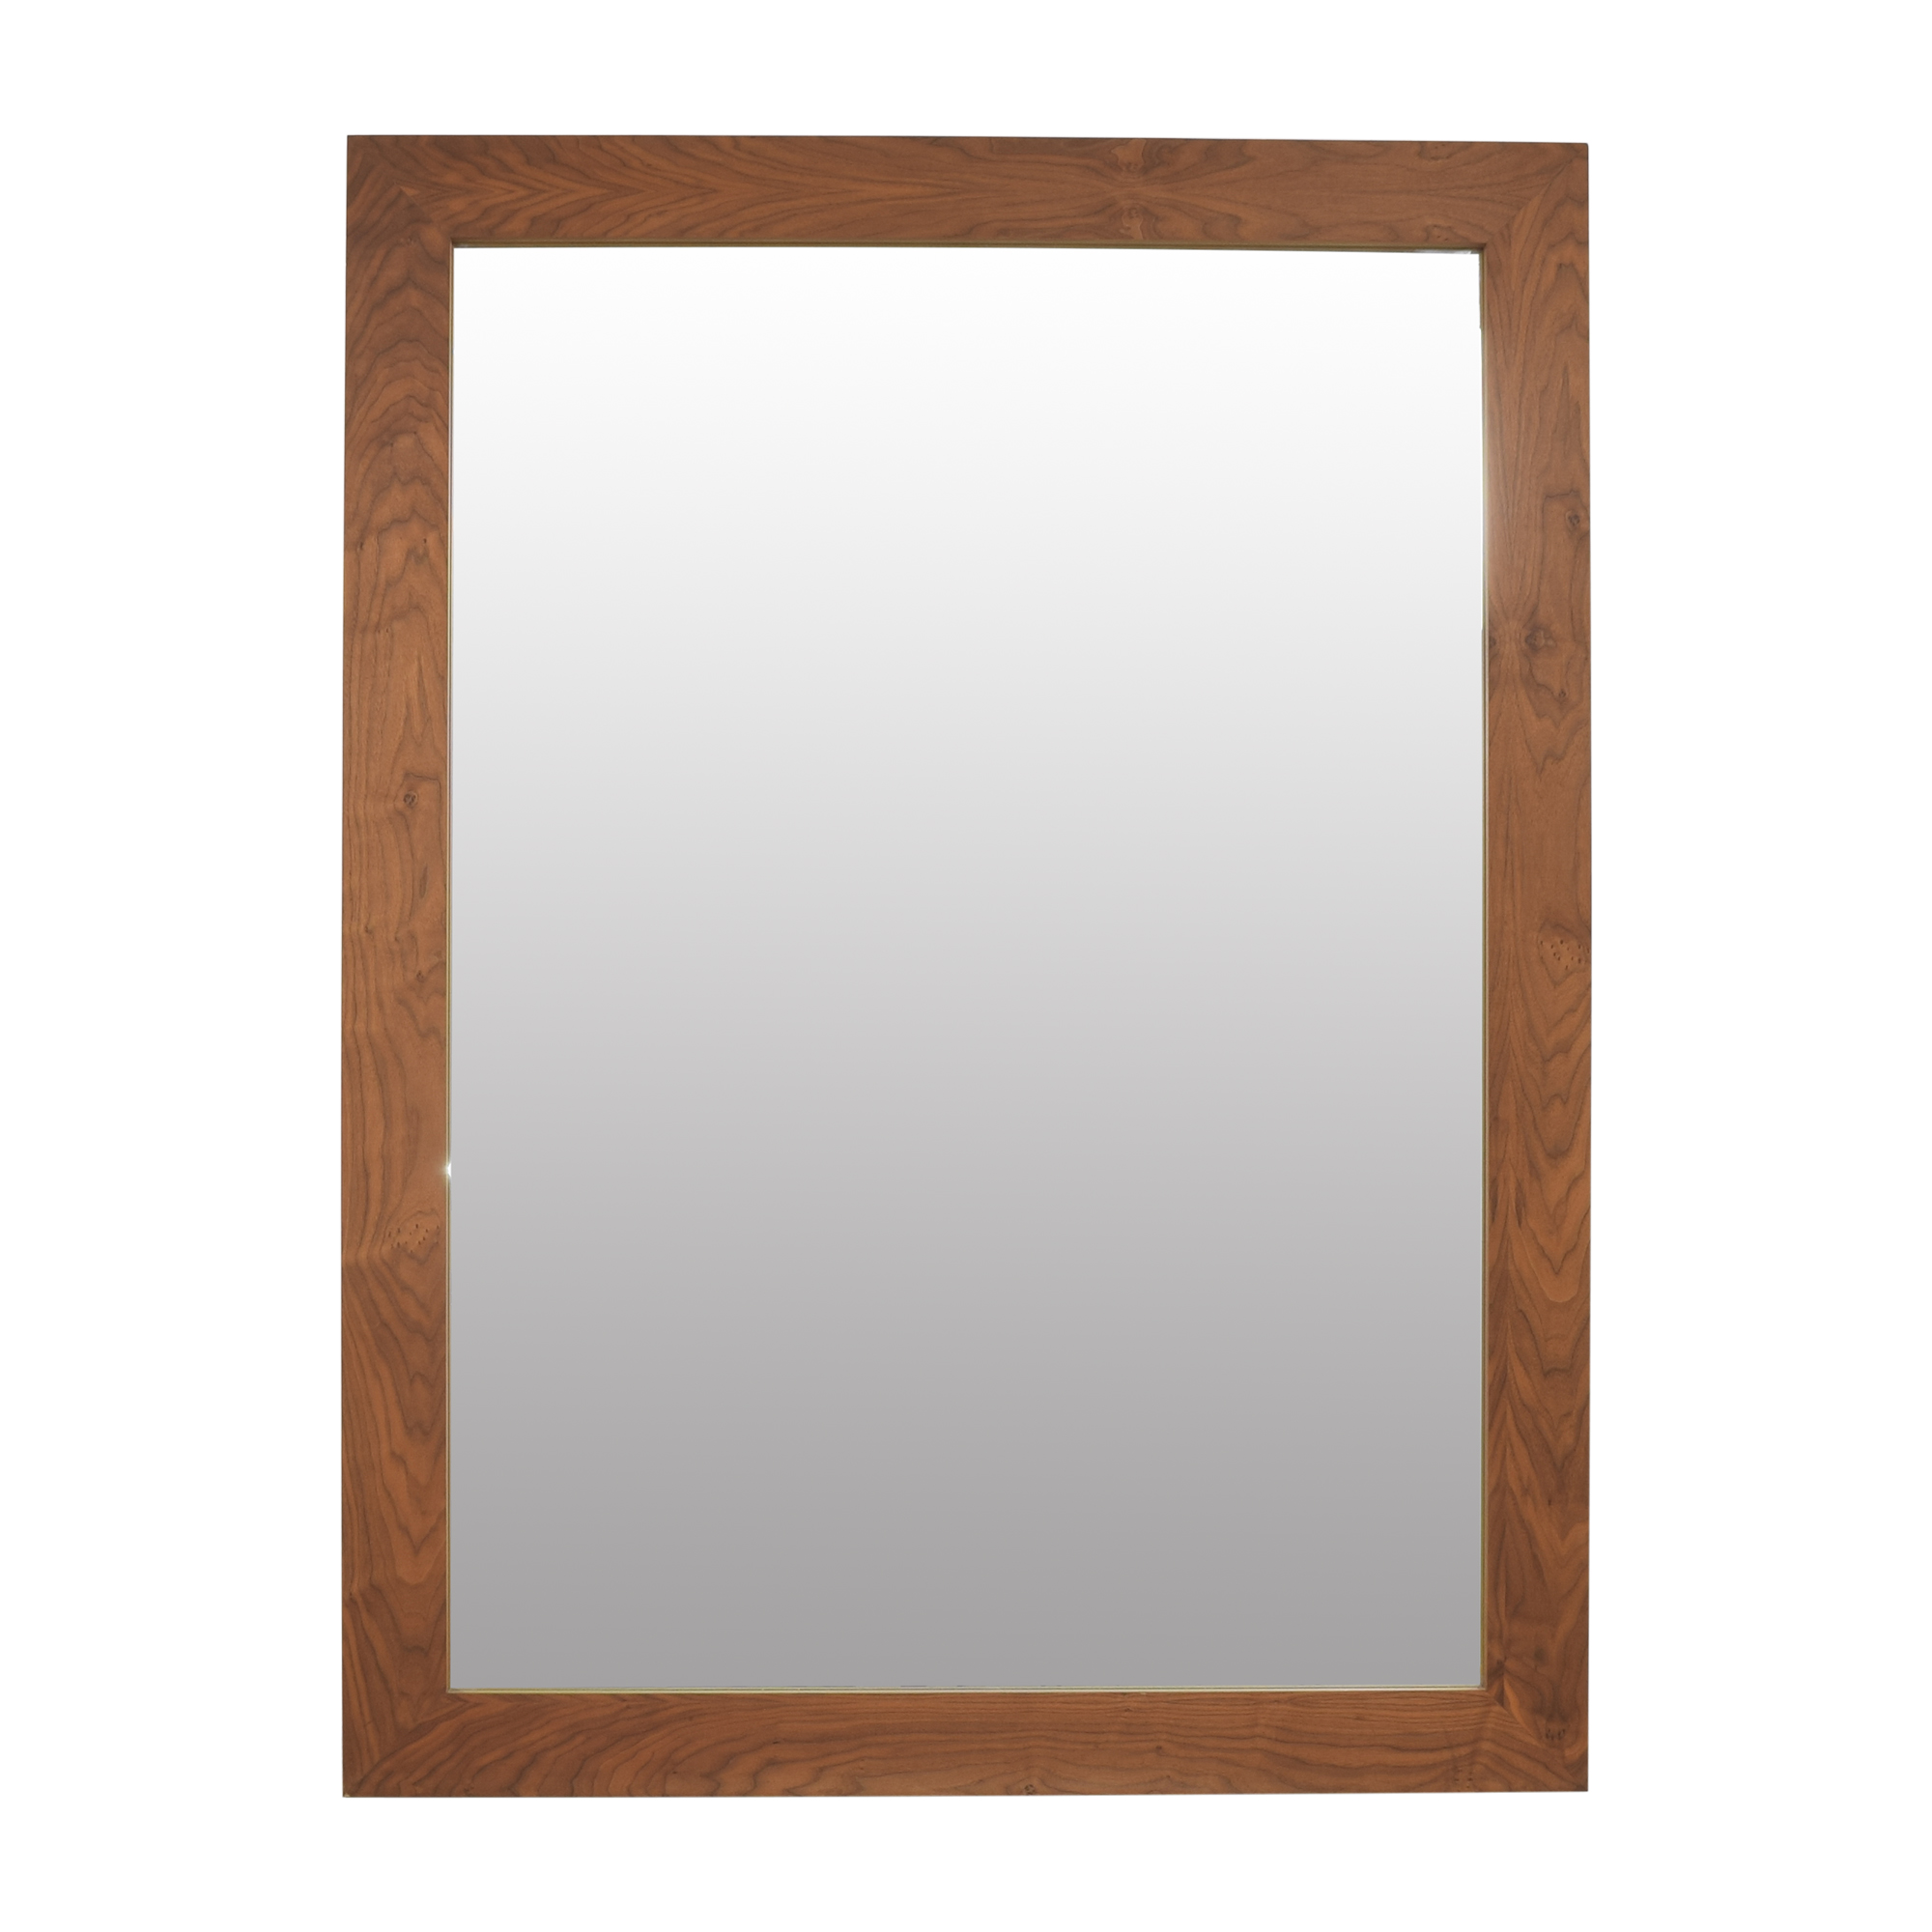 Desiron Desiron Framed Floor Mirror discount